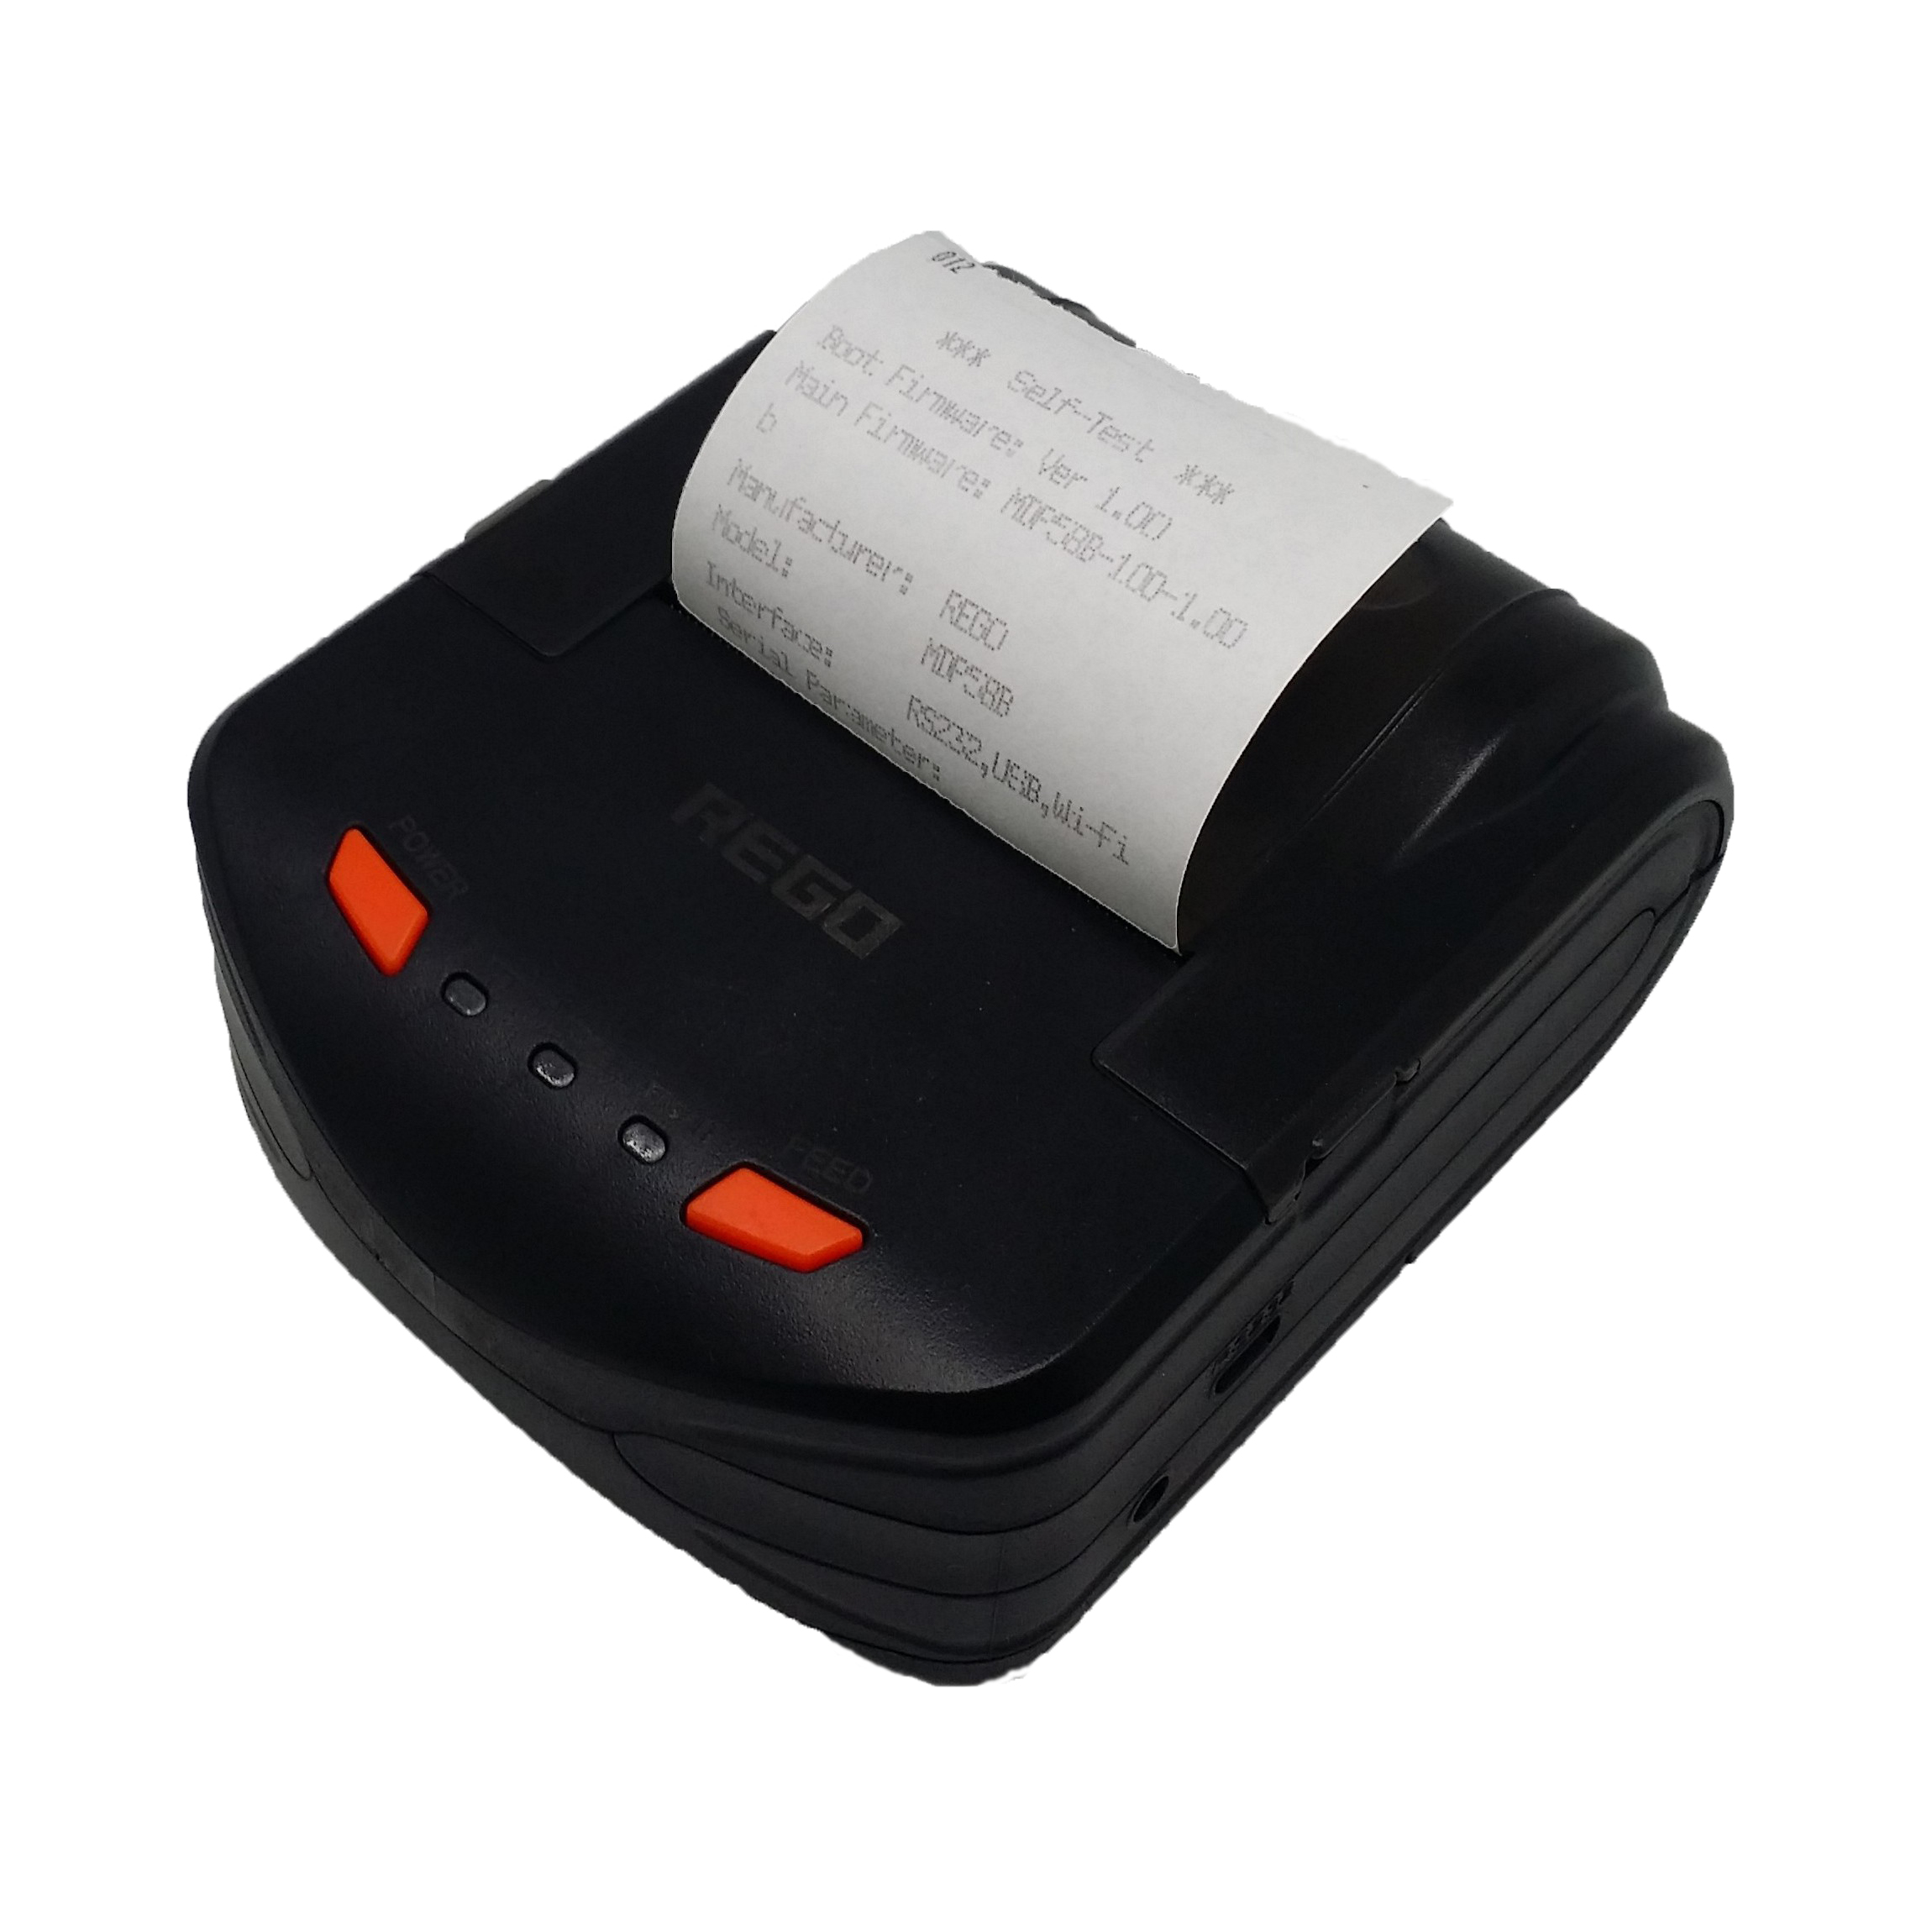 Best Supplier 58Mm Bluetooth Handheld  Printer Android Mobile  Printer